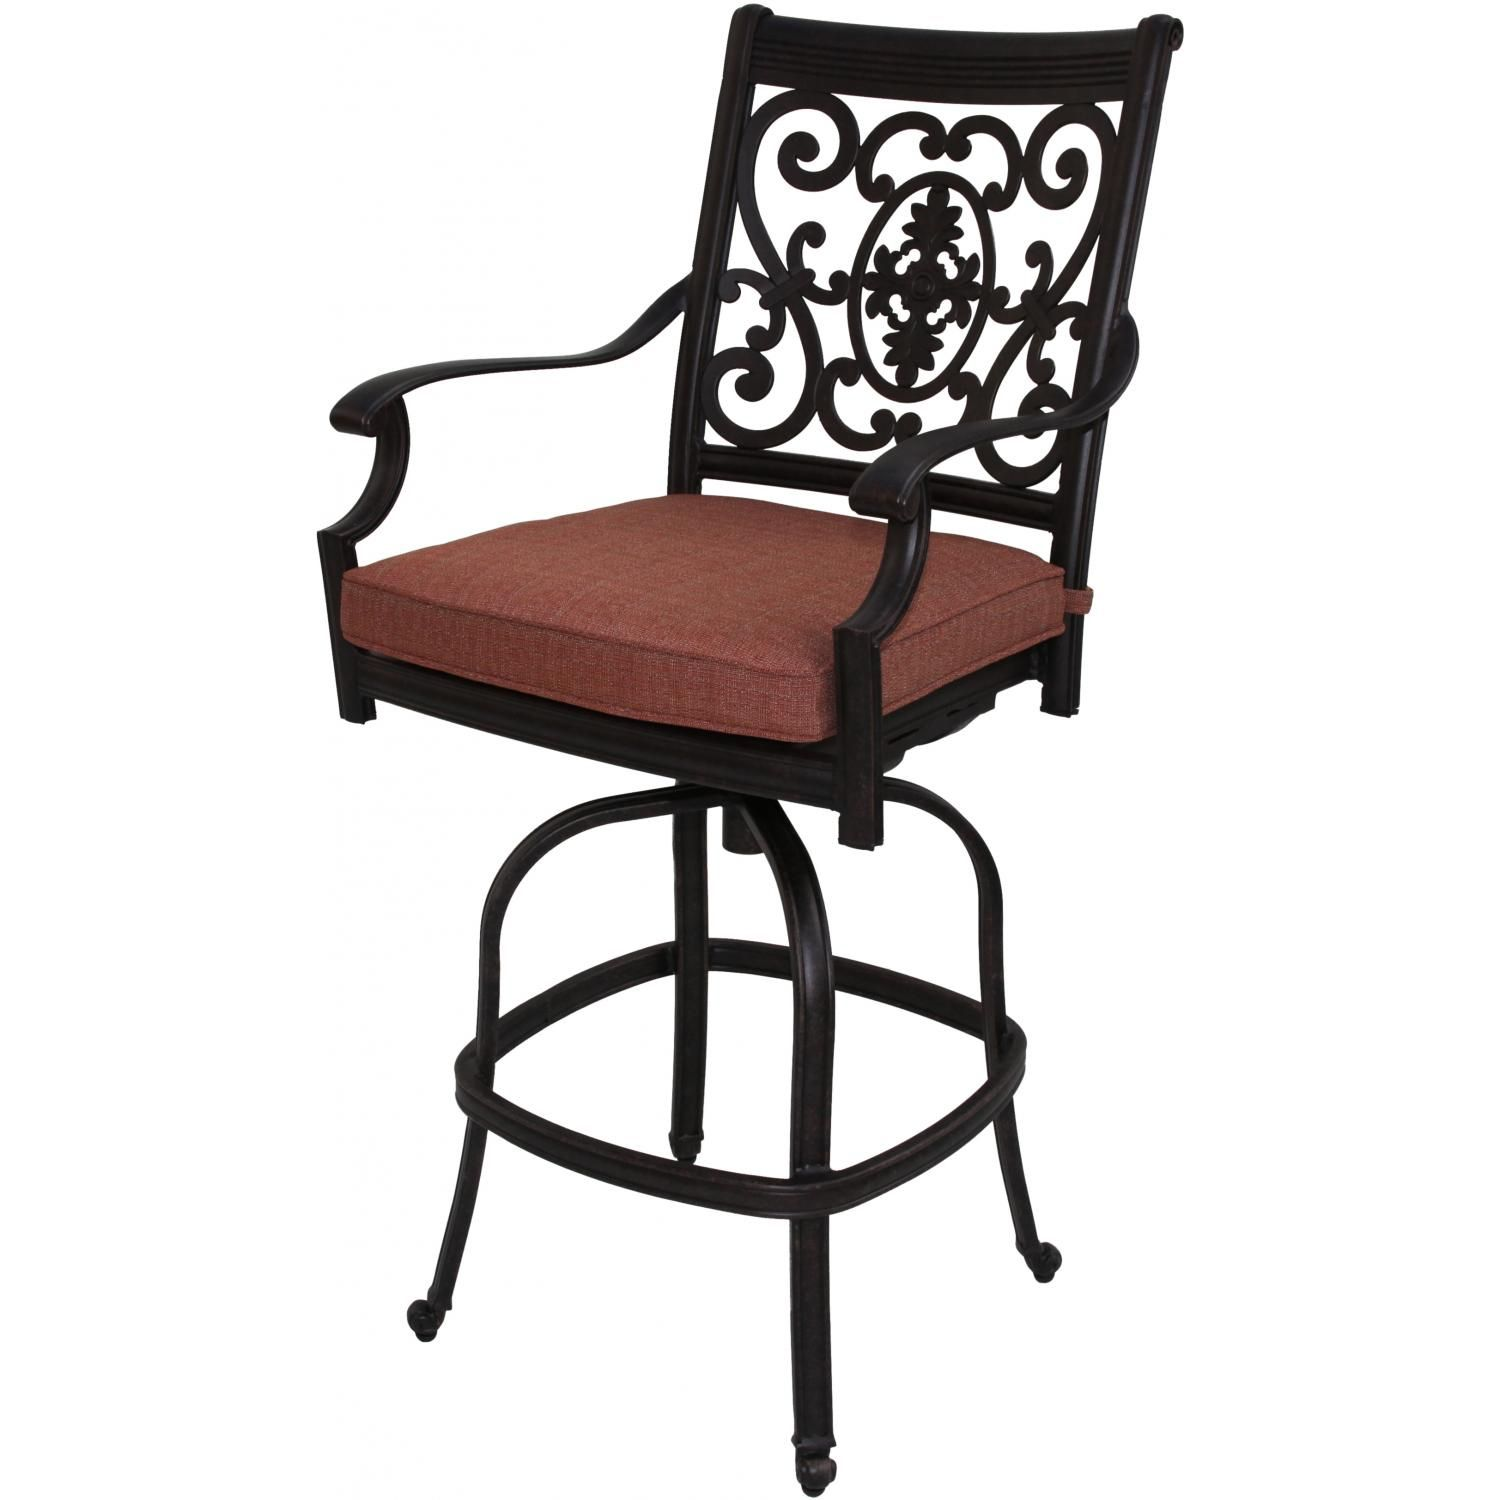 stools pd shop chair lowes patio treasures garden wicker at bar stool com